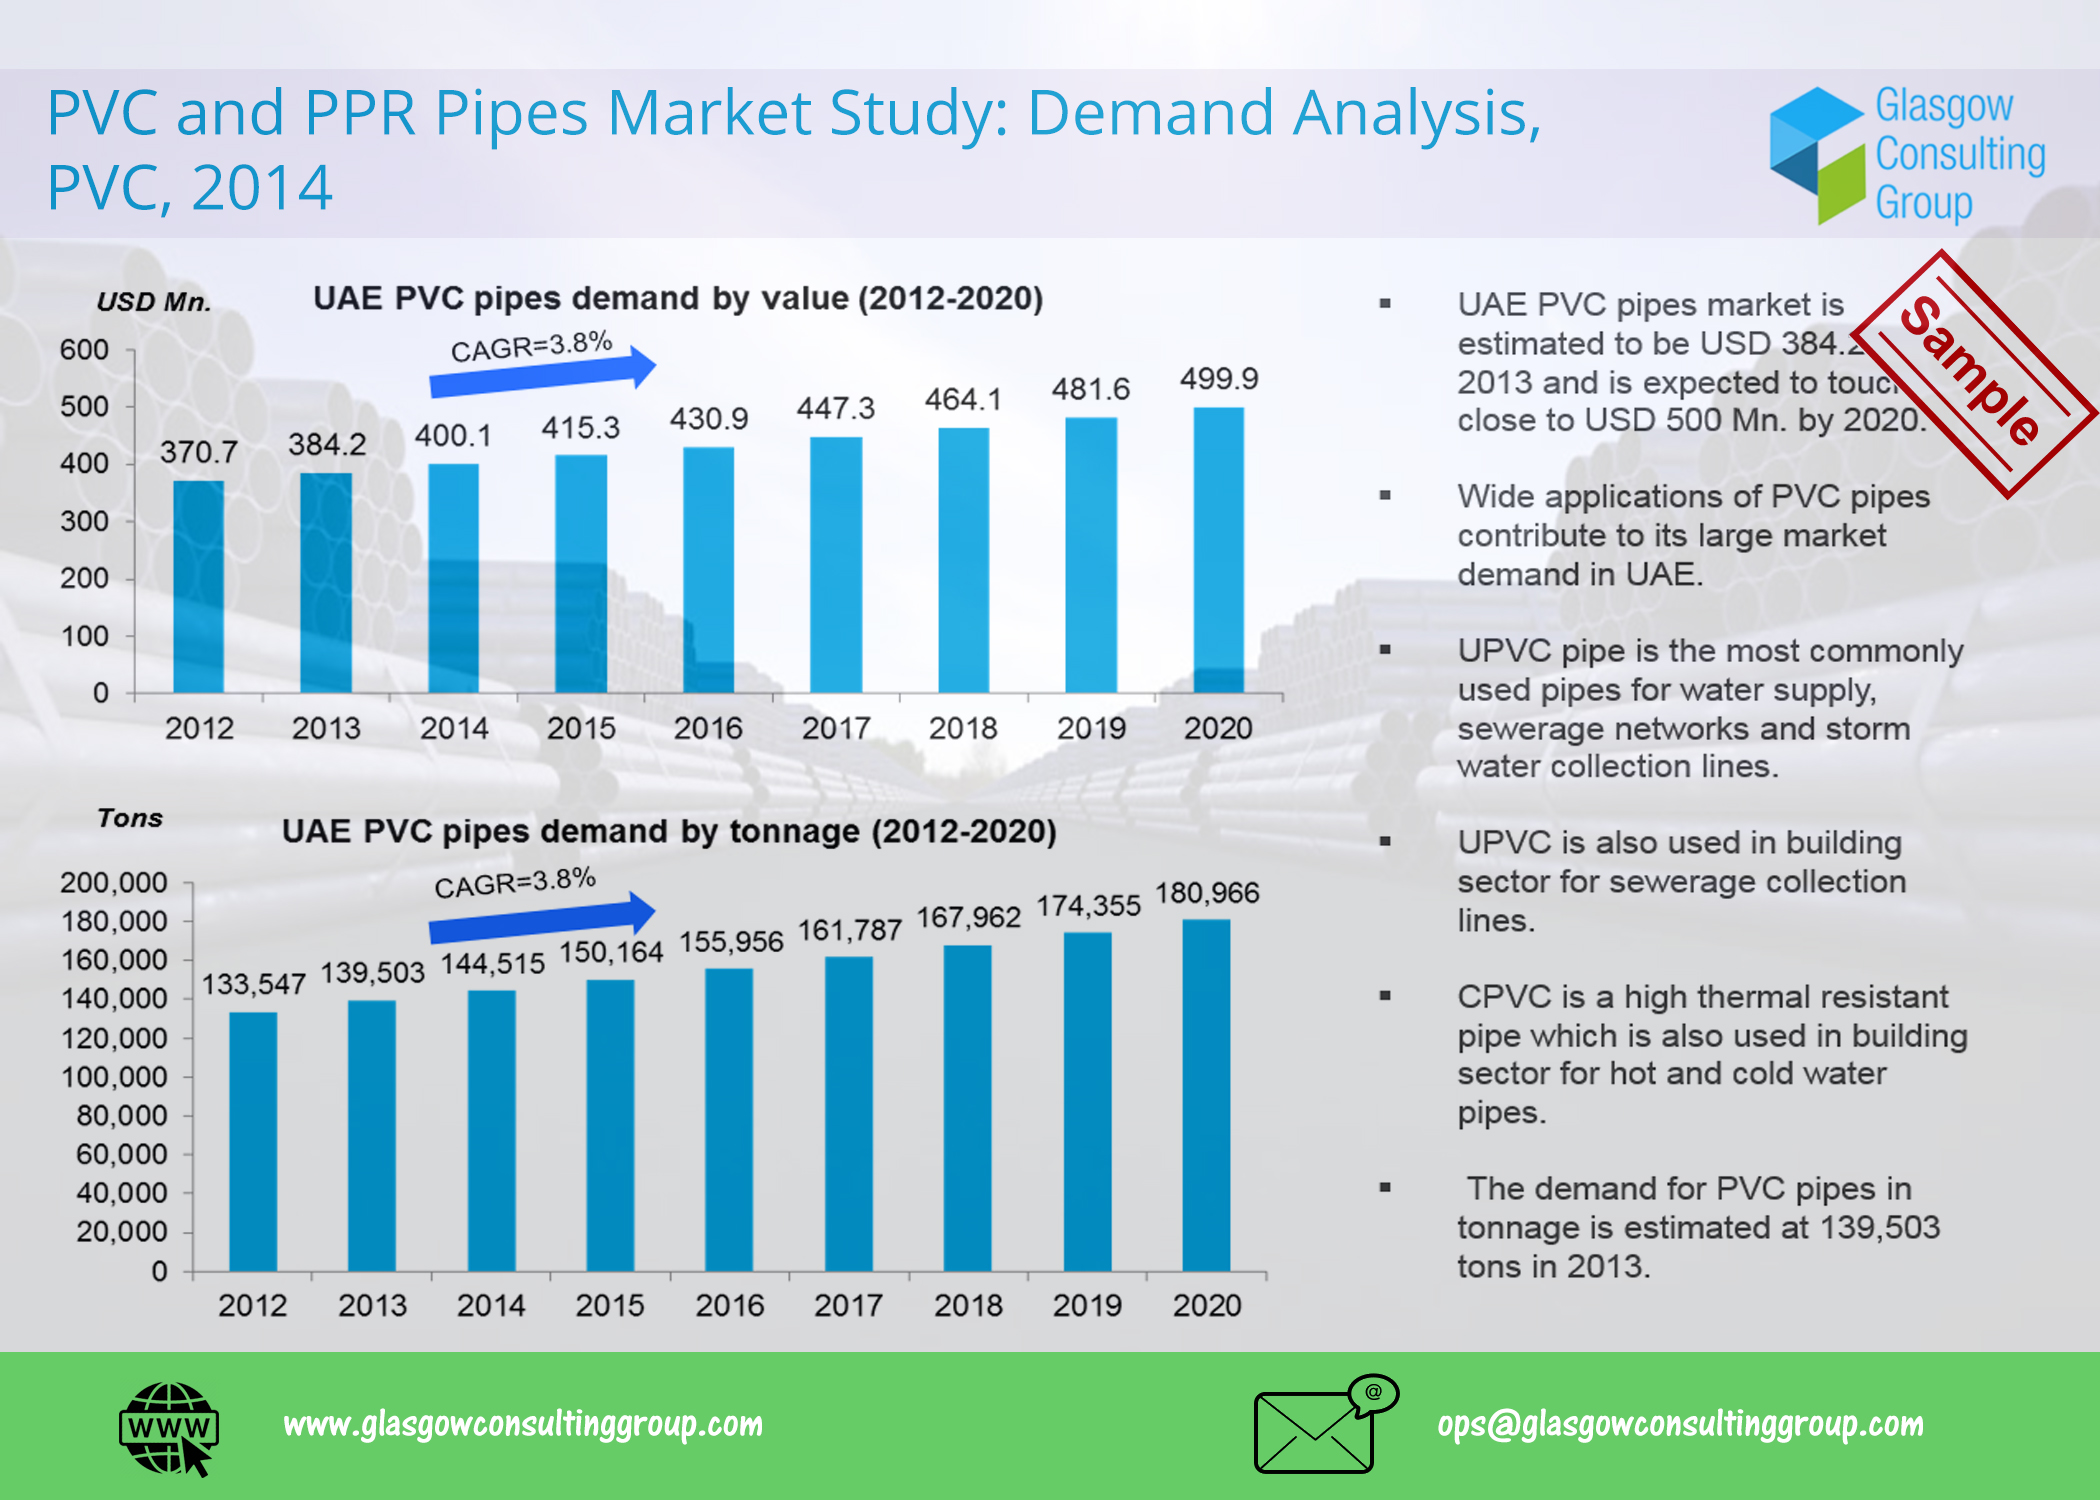 4 PVC and PPR Pipes Market Study, Demand Analysis, PVC, 2014